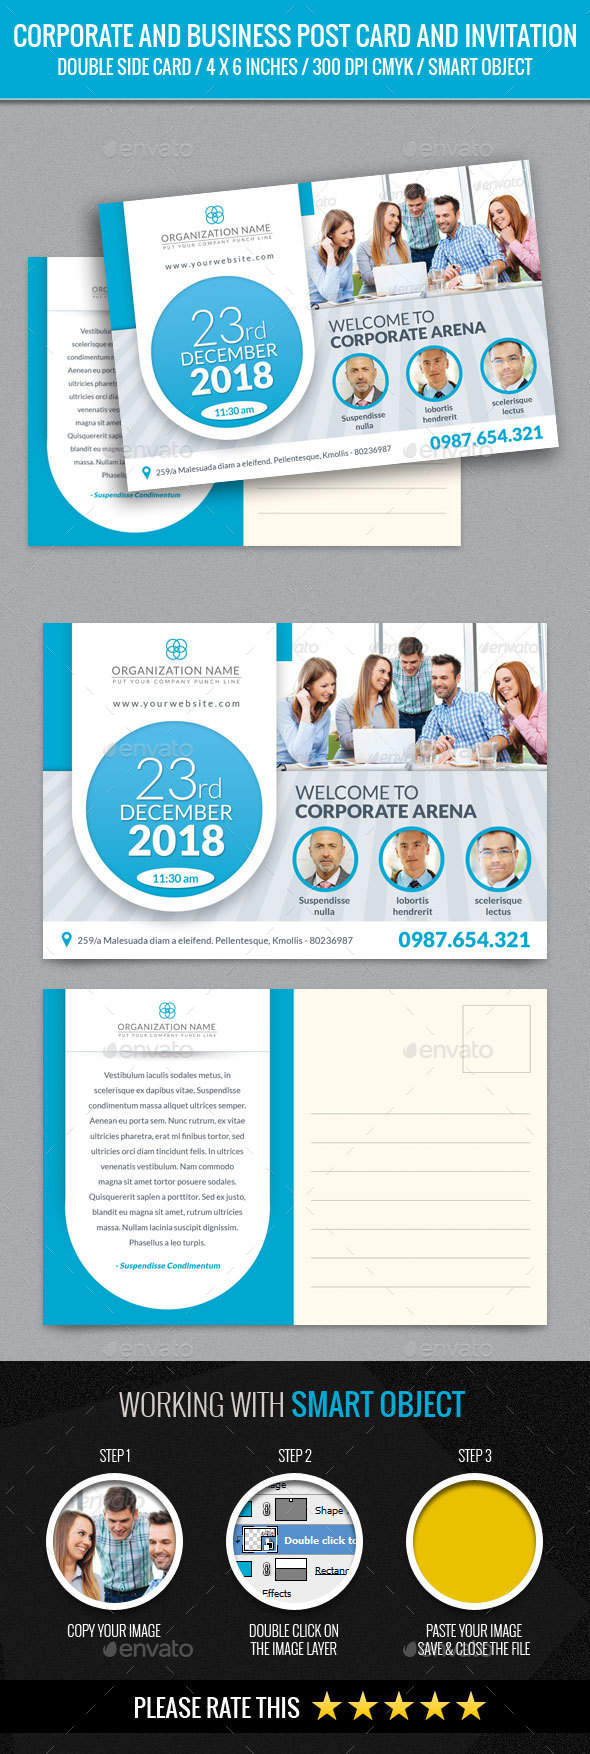 Corporate and Business Post Card Template